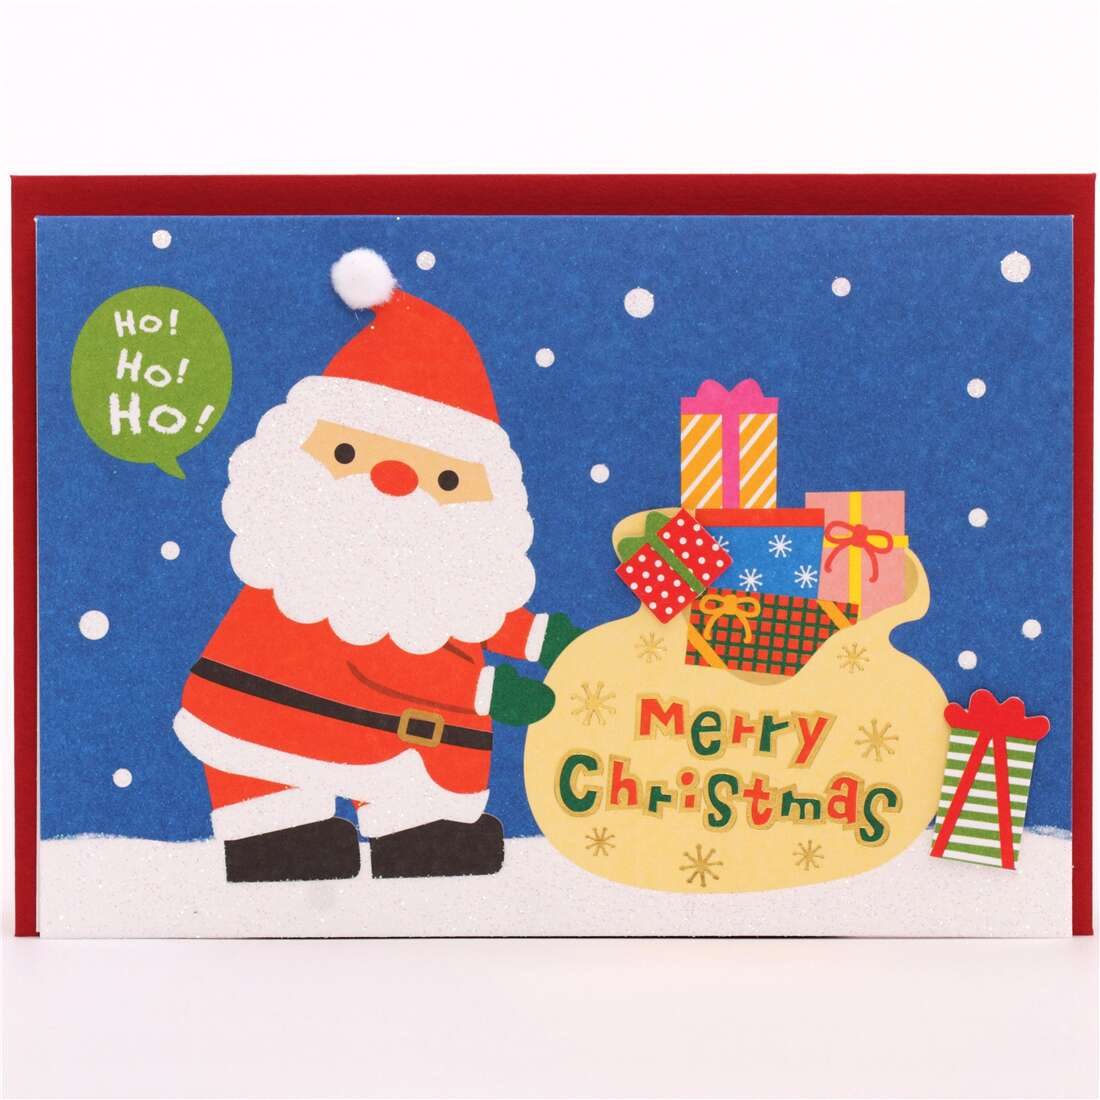 Merry Christmas Letter Y.Cute Santa Claus Christmas Bobble Hat Glitter Letter Postcard From Japan